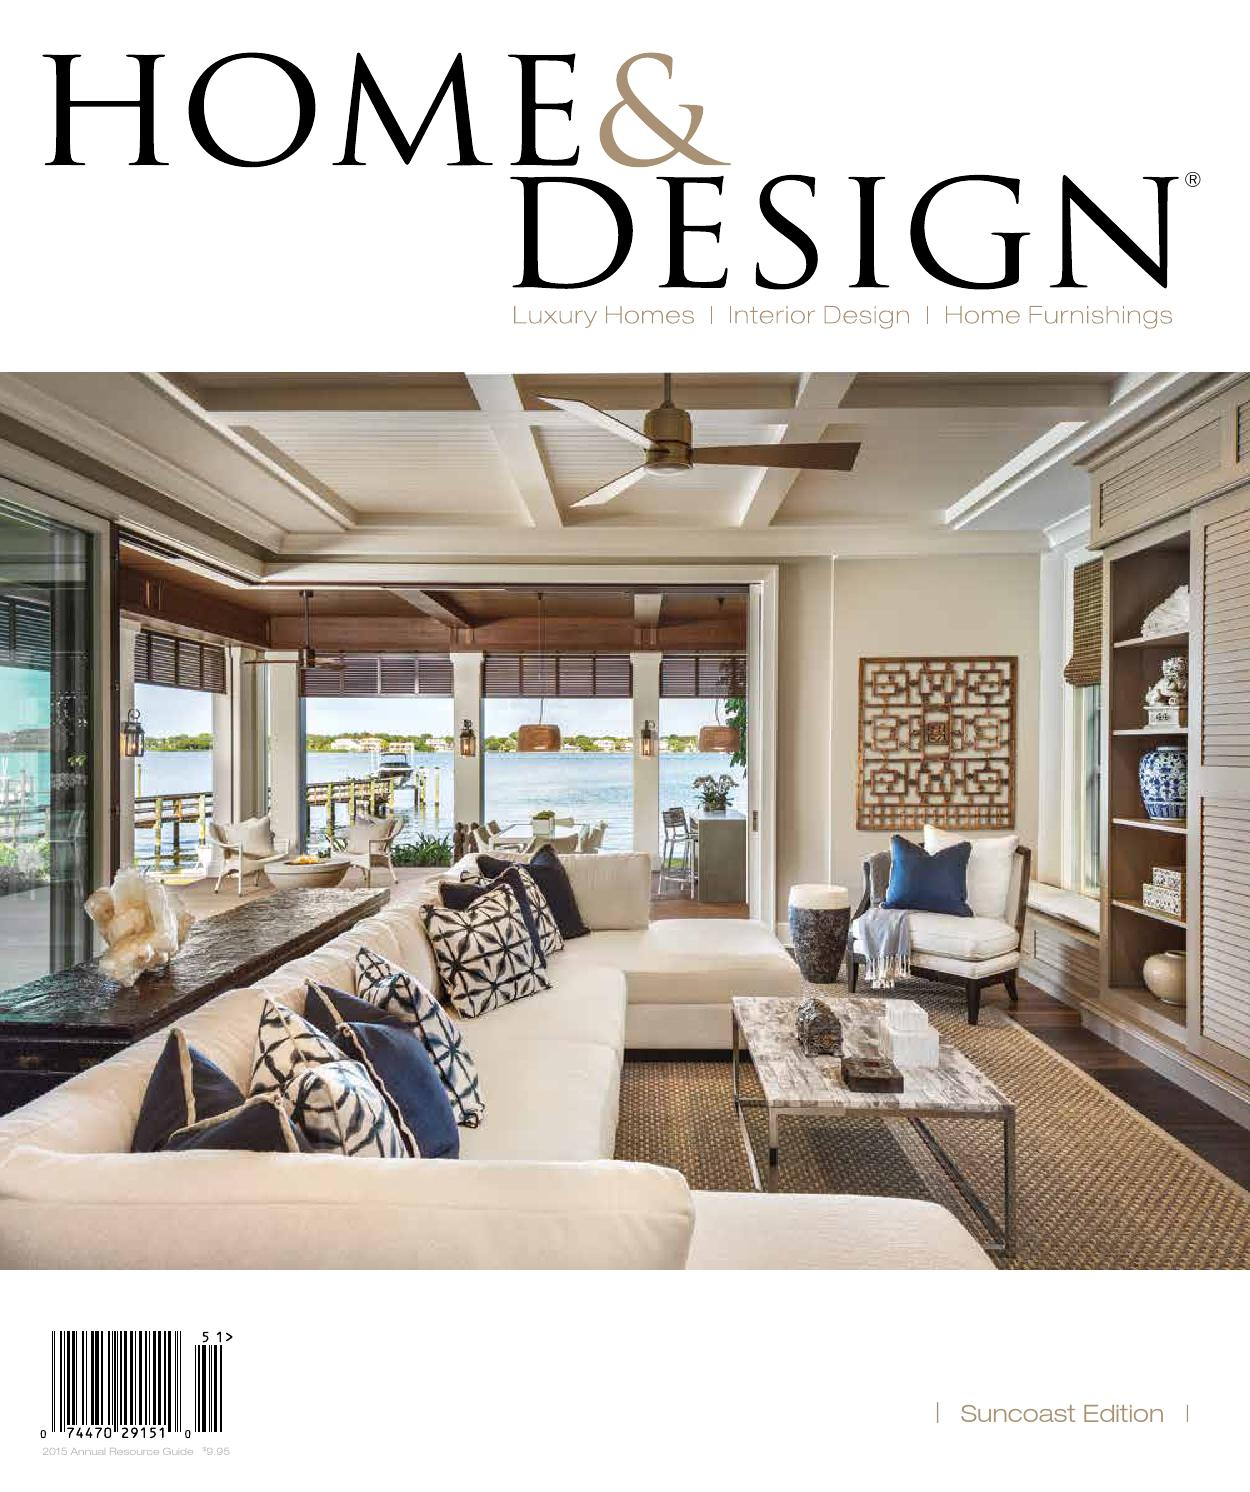 Home Design Magazine Annual Resource Guide 2015